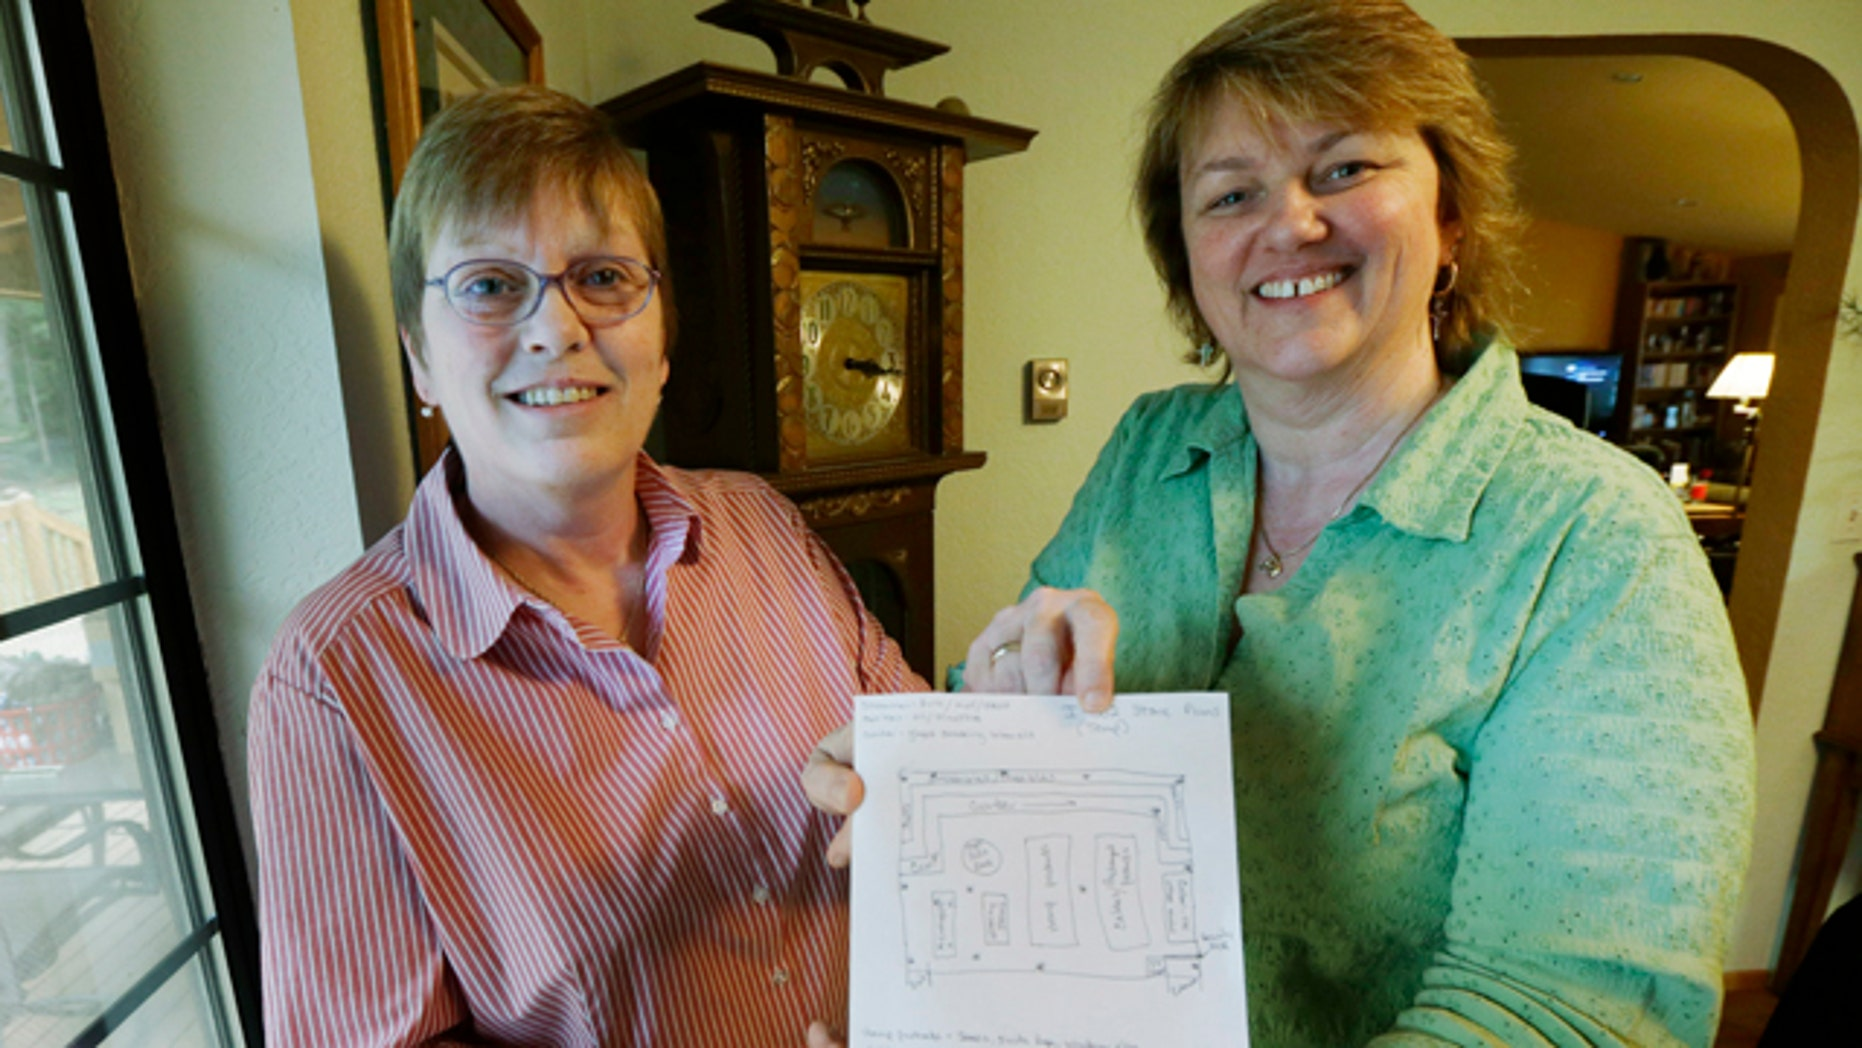 Mar. 5, 2013: Kim Ridgway, left, and her wife Kimberly Bliss, right, pose for a photo.